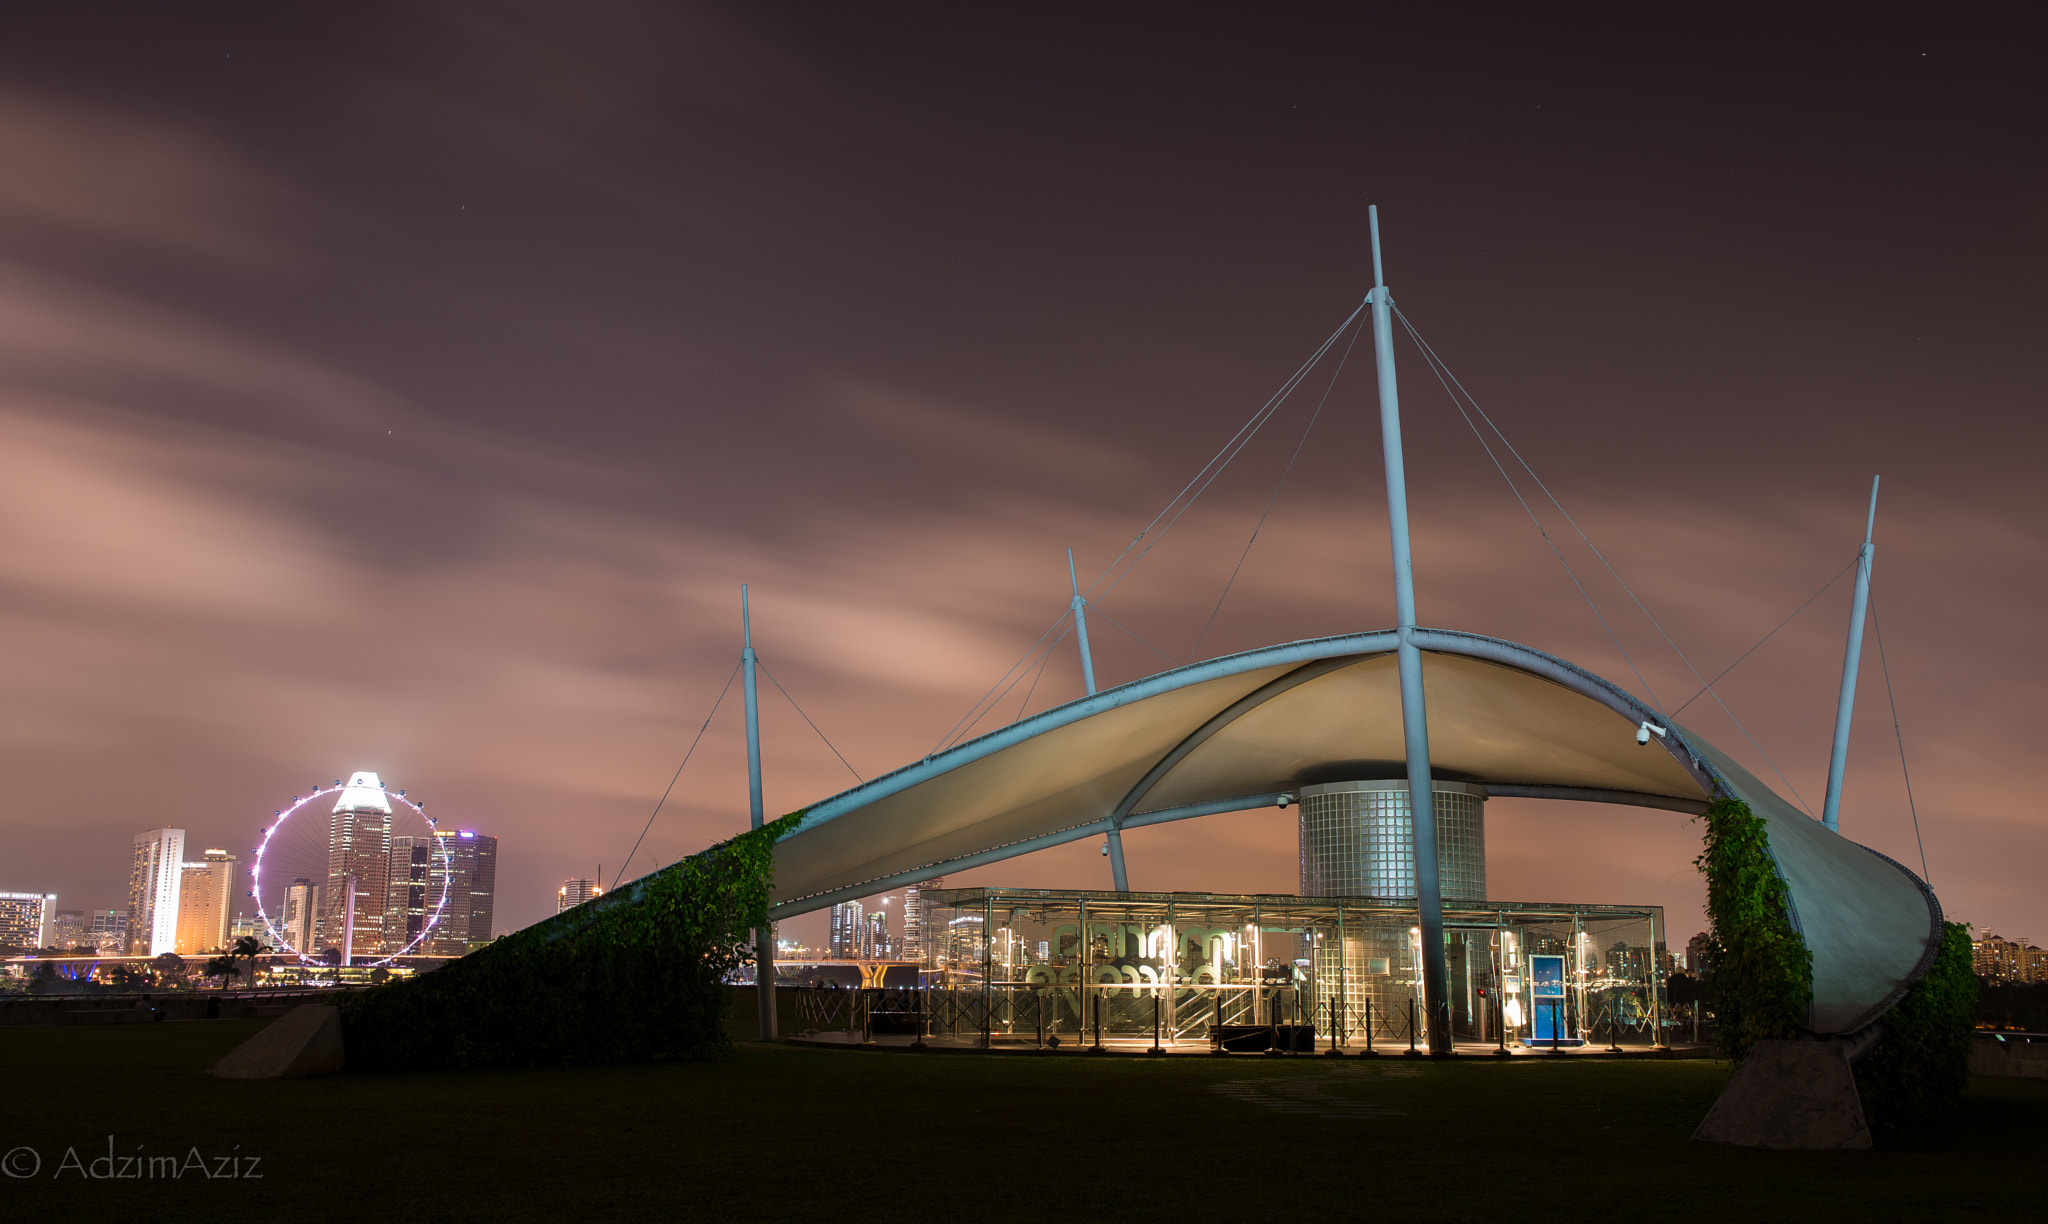 Photograph Marina Barrage by Adzim Aziz on 500px